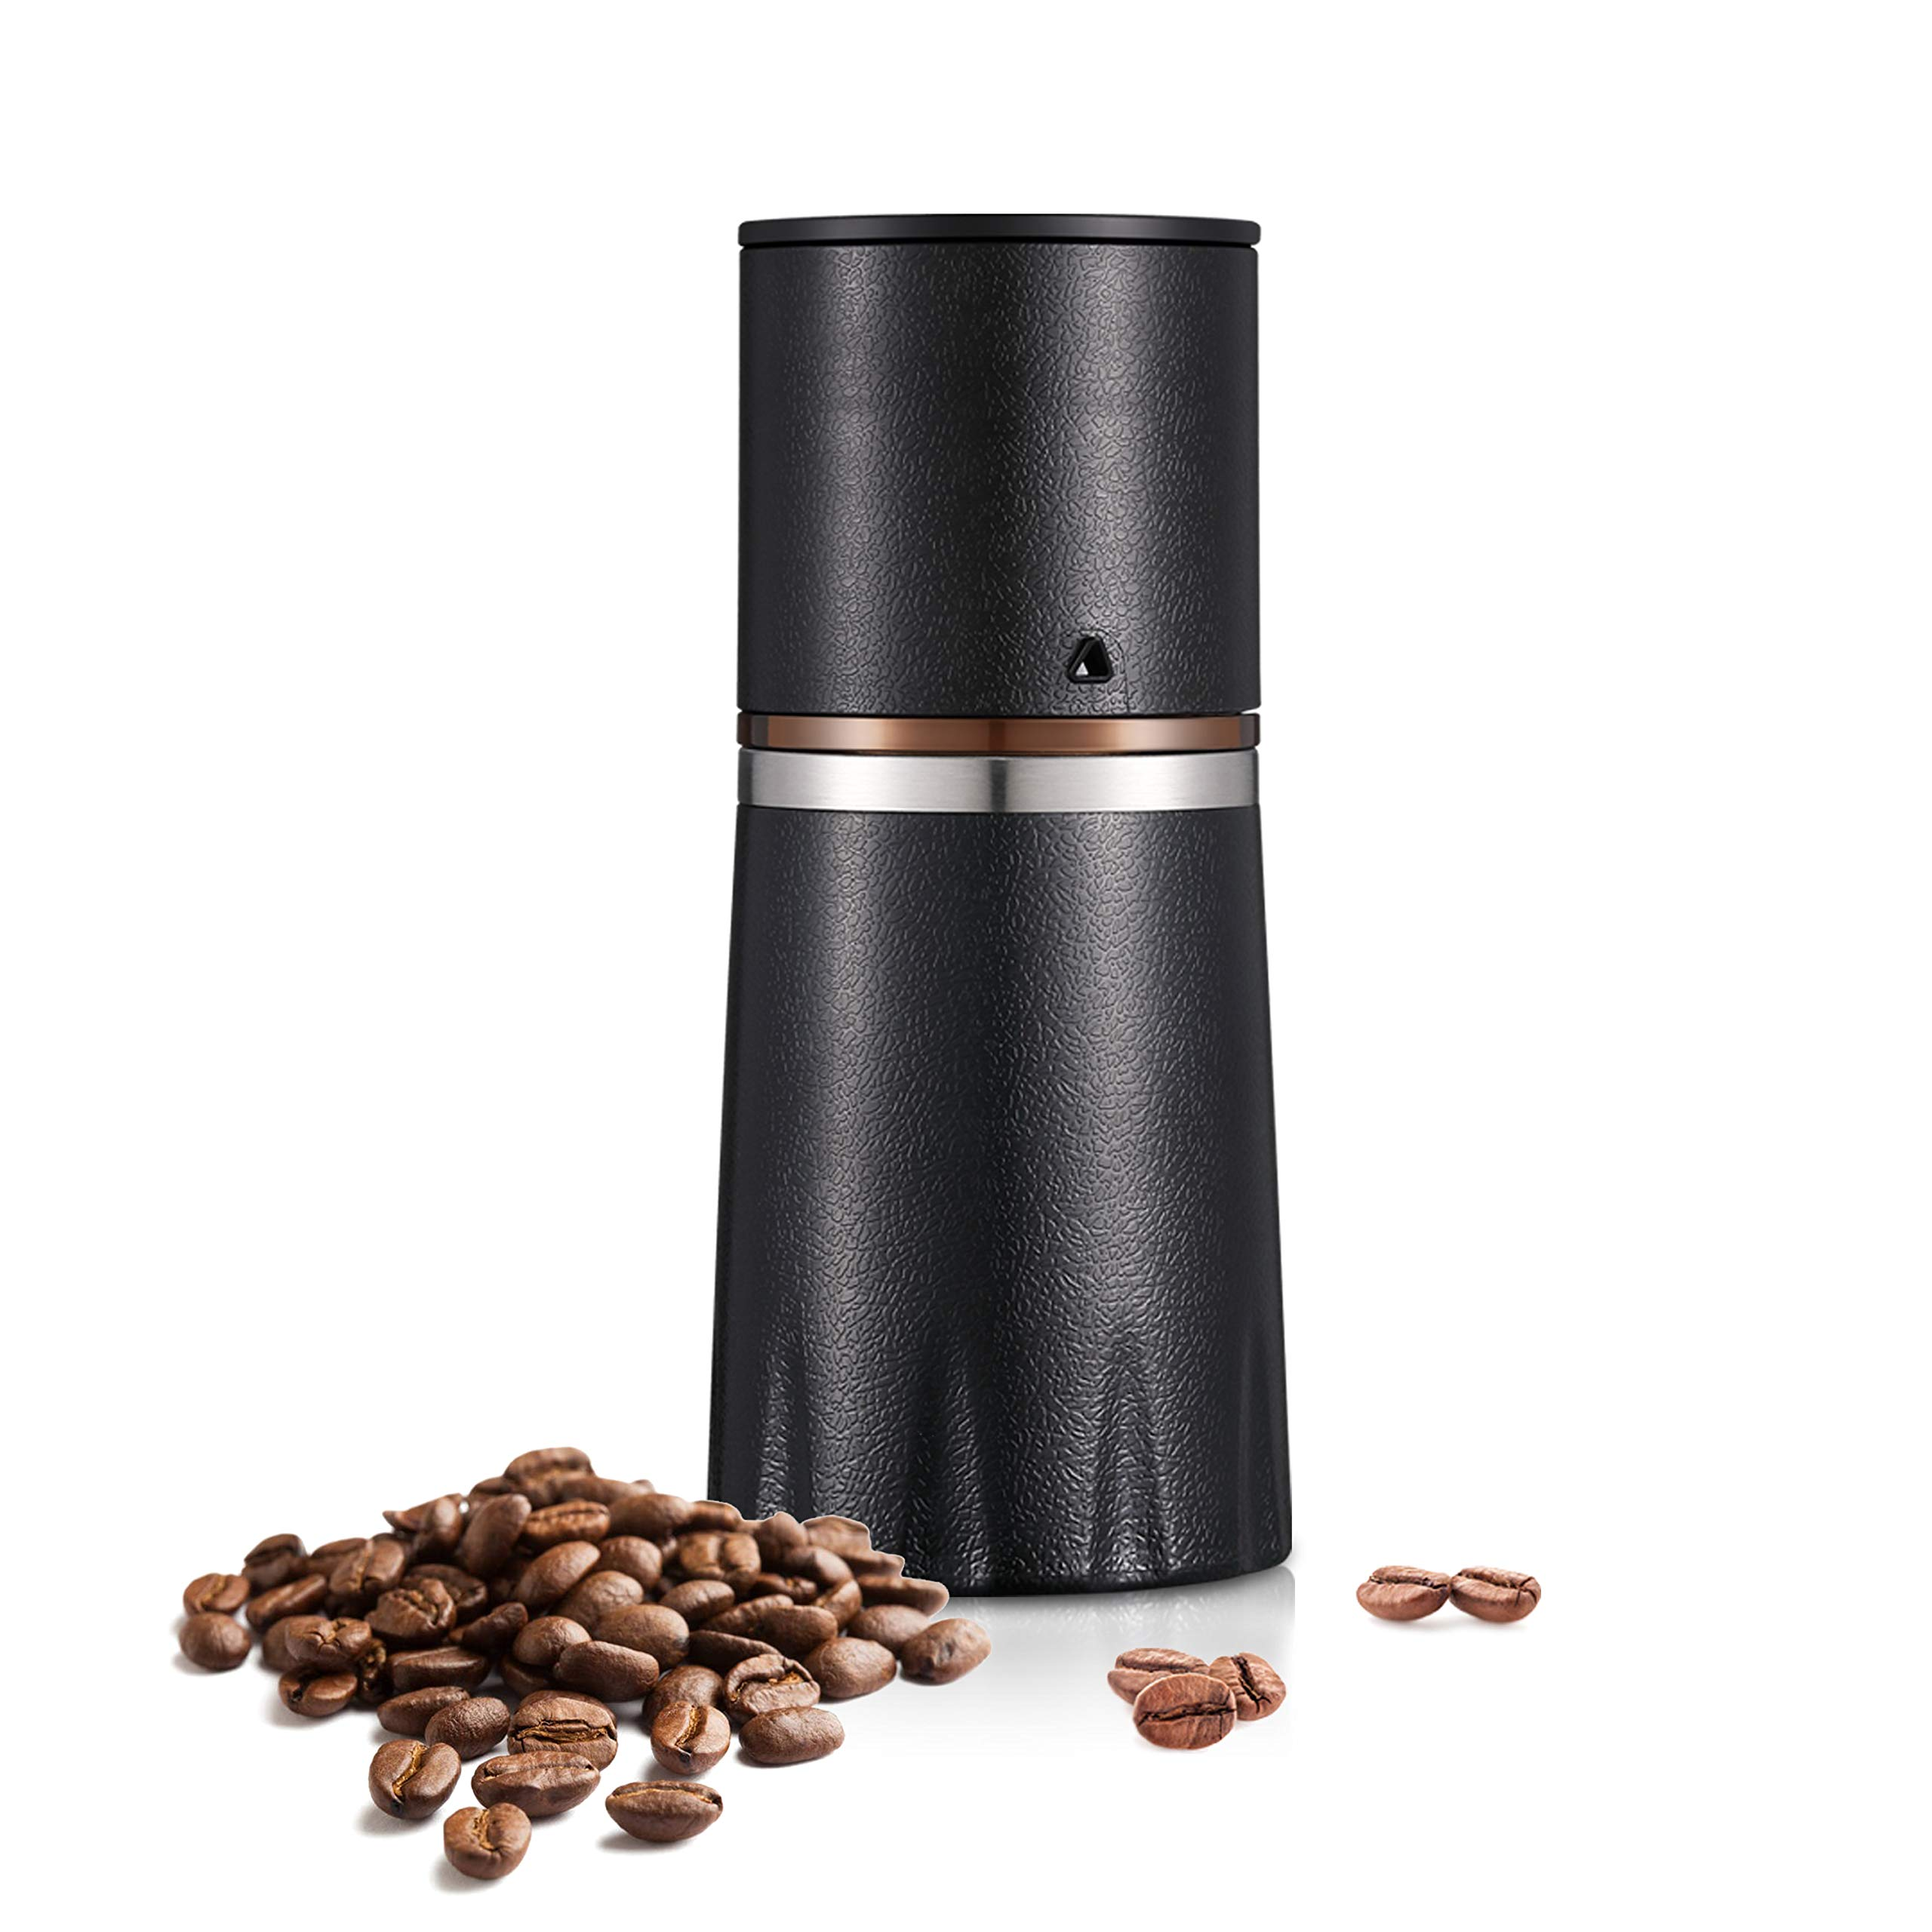 Multifunctional Manual Portable Coffee Machine,coffee cup,for Travel Camping Outdoors Office Manual Grinders